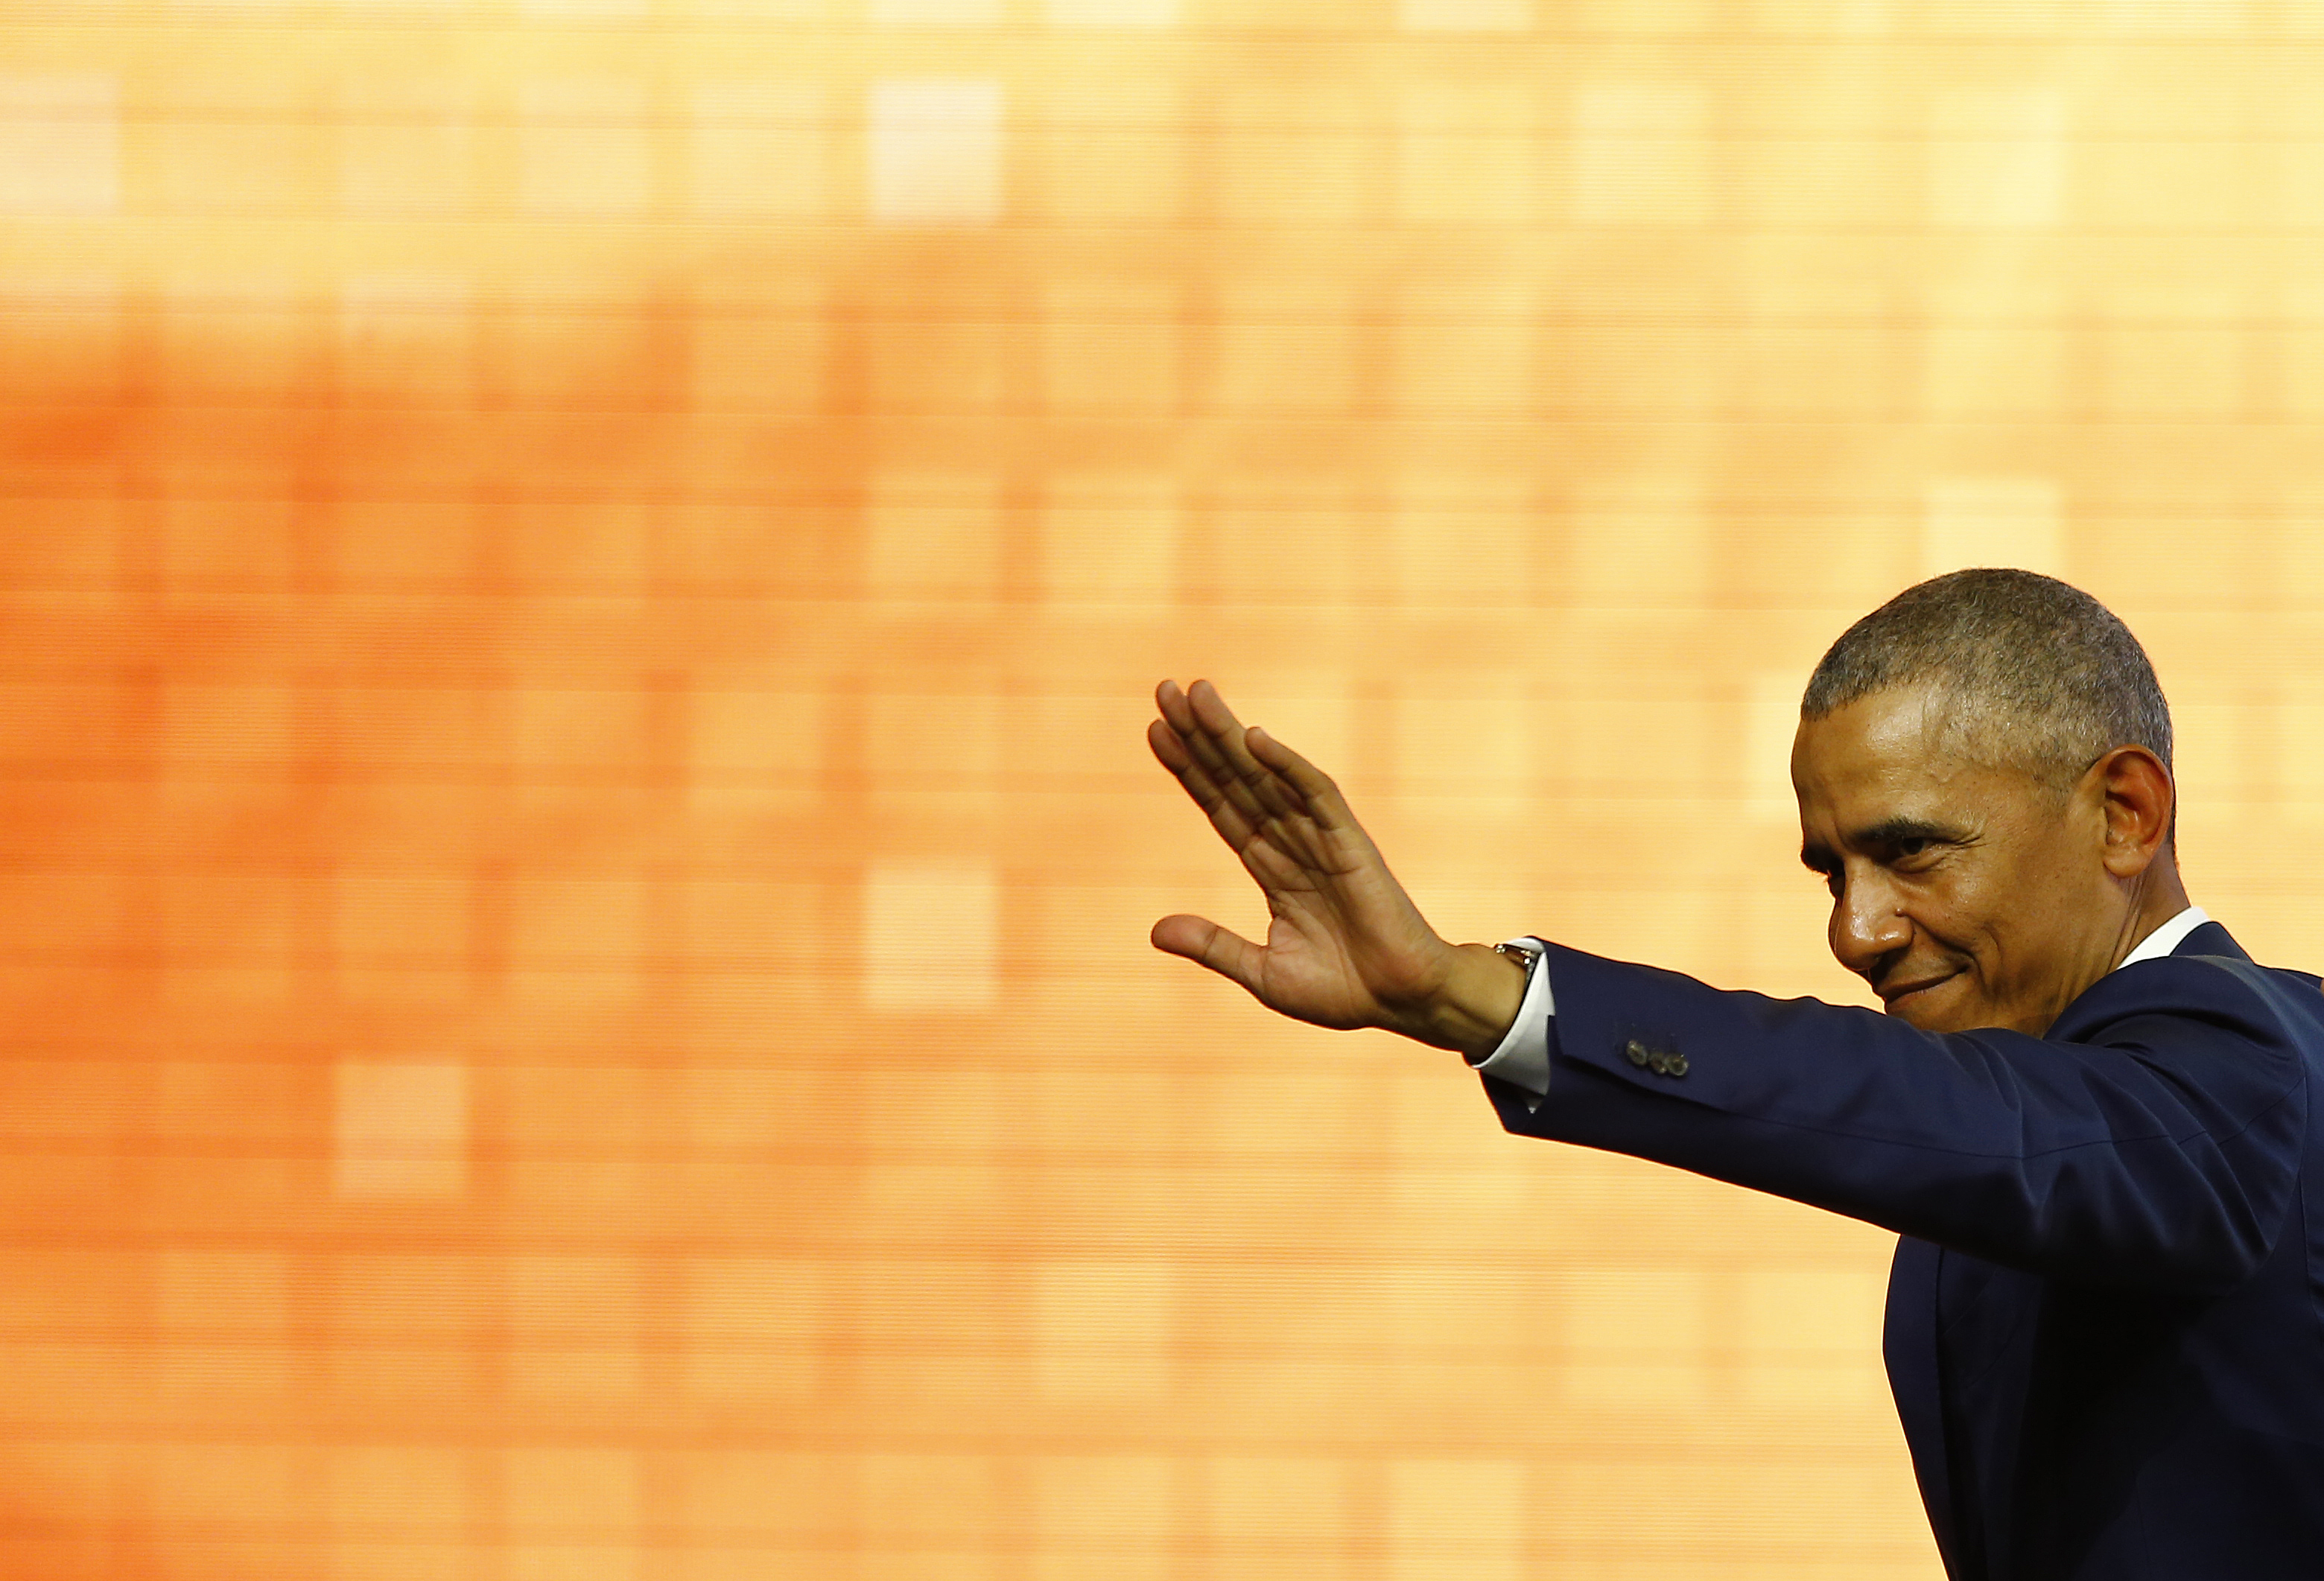 Former U.S. President Barack Obama waves during the World Travel and Tourism Council Global Summit on April 03, 2019 in Seville, Spain.